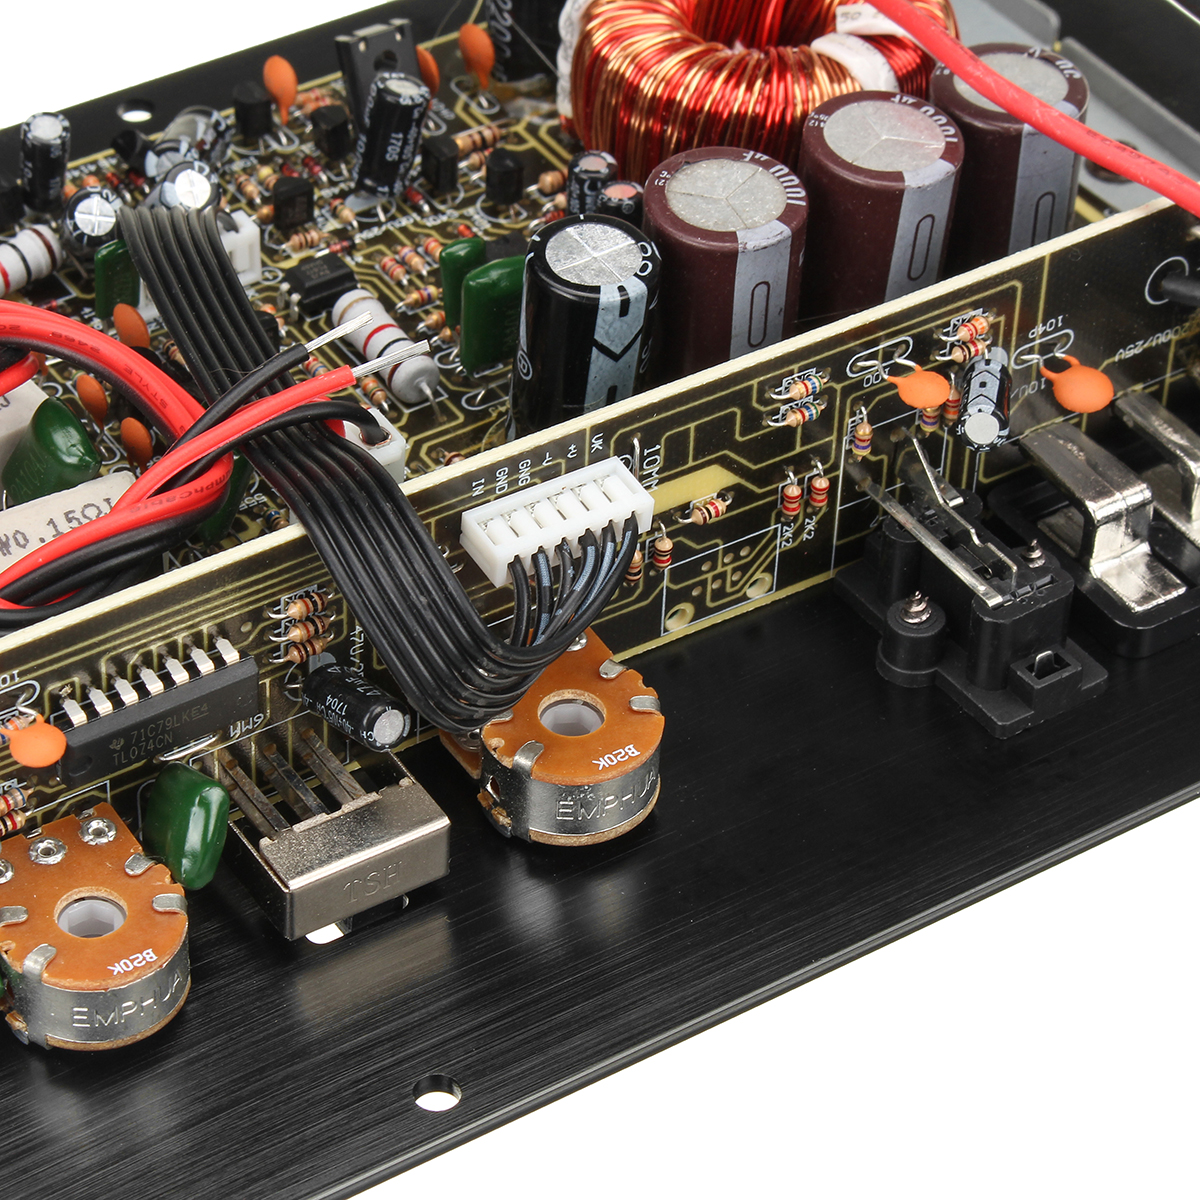 12v 1000w Mono Car Audio Power Amplifier Powerful Bass Board Electrical Installation Durante Electric Inc Pa Detail Image